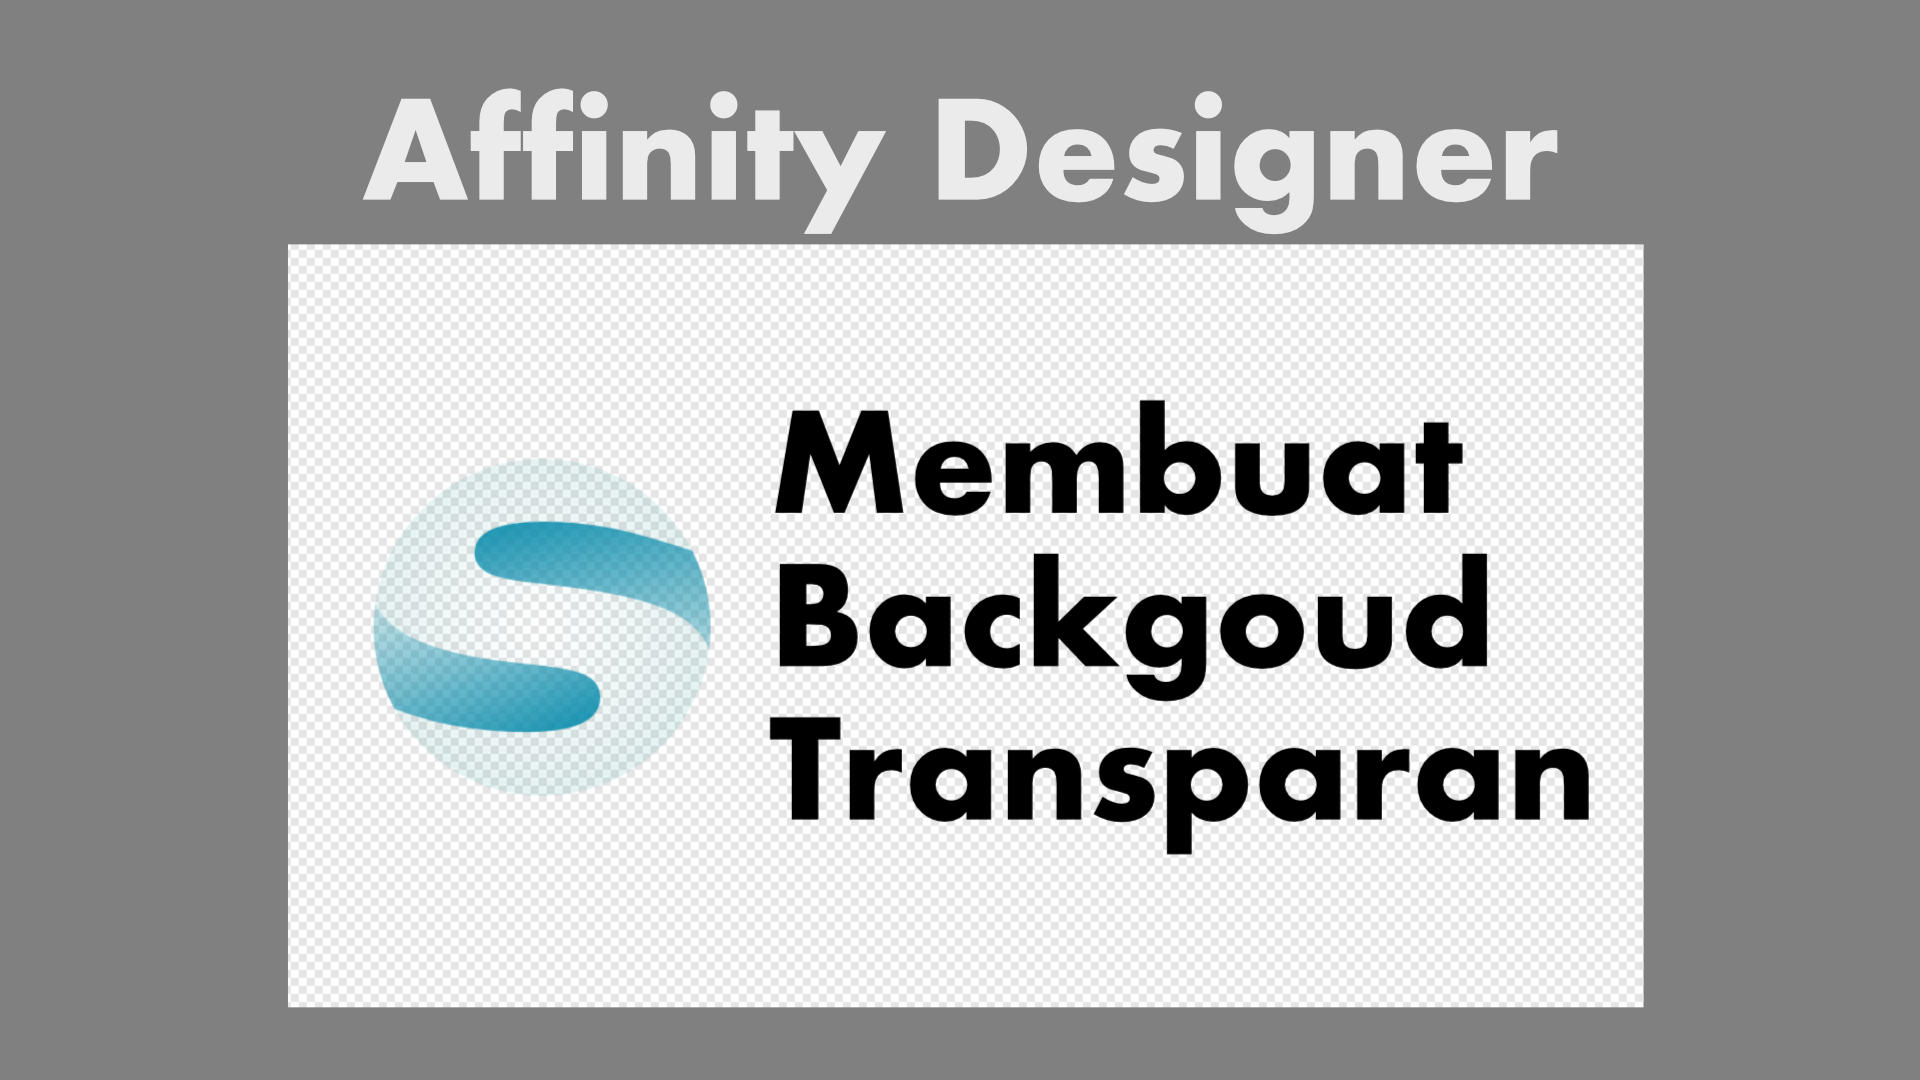 2 Cara Membuat Background Transparan di Affinity Designer |